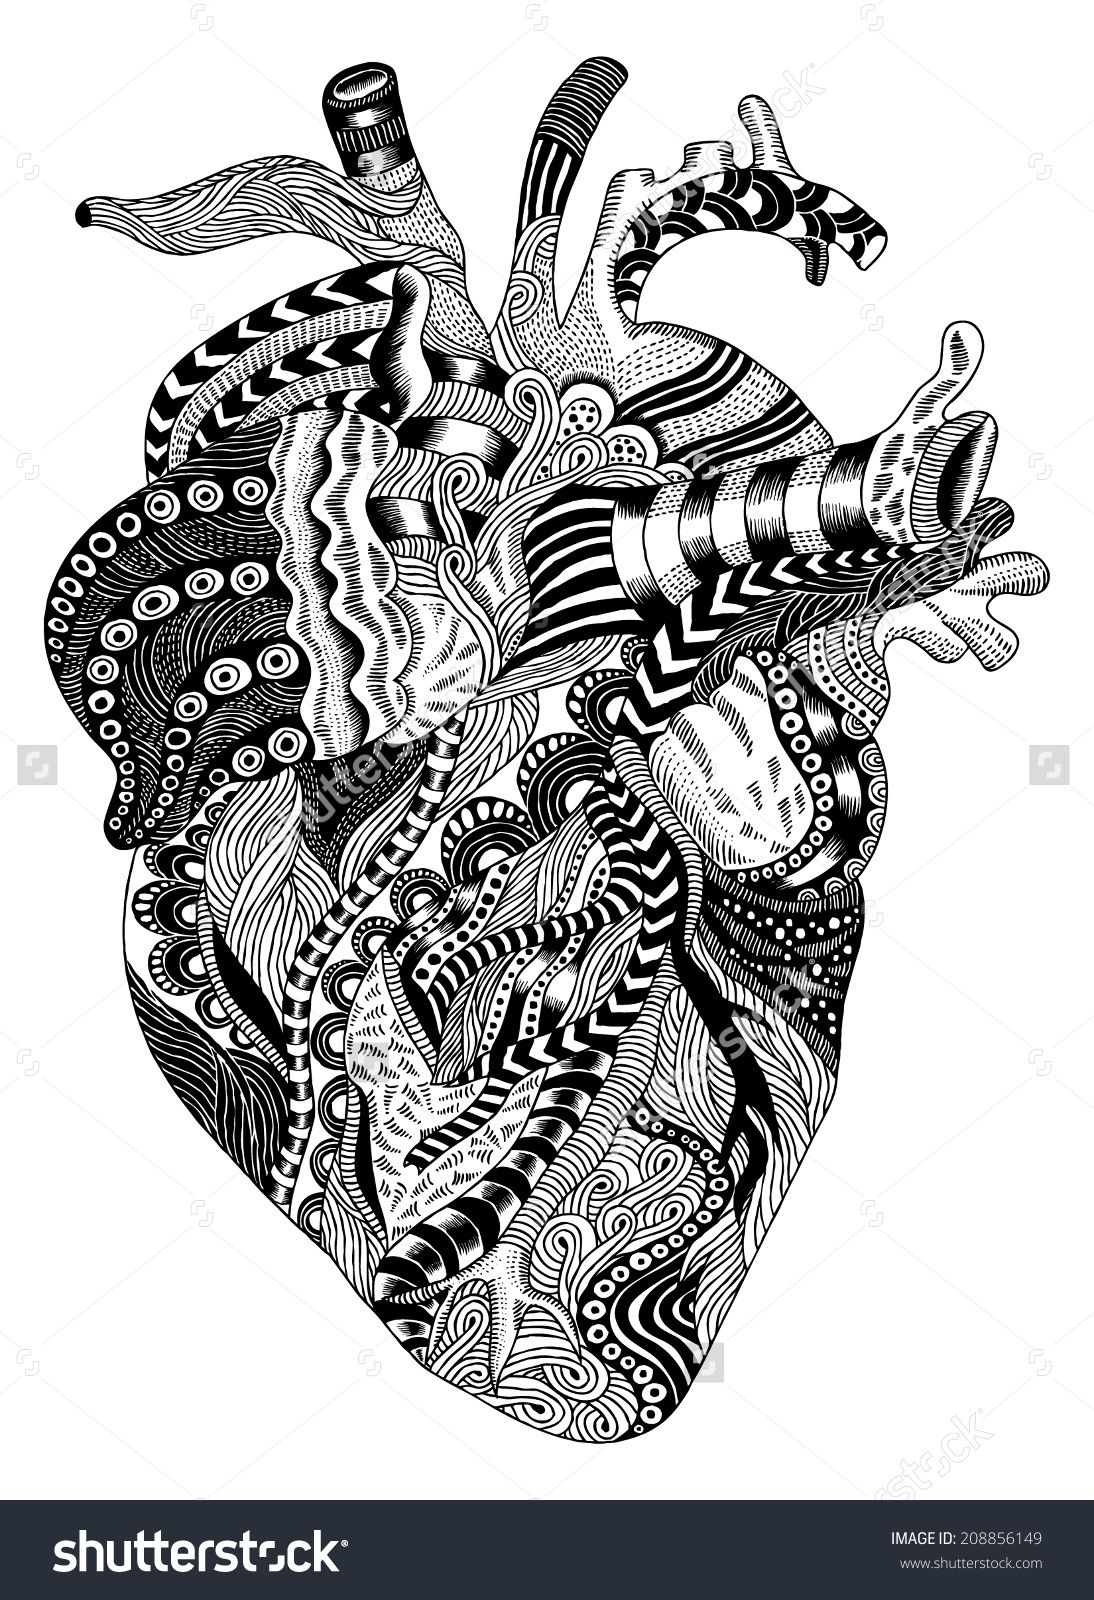 stock-vector-detailed-hand-drawn-psychedelic-illustration-of-human, Muscles